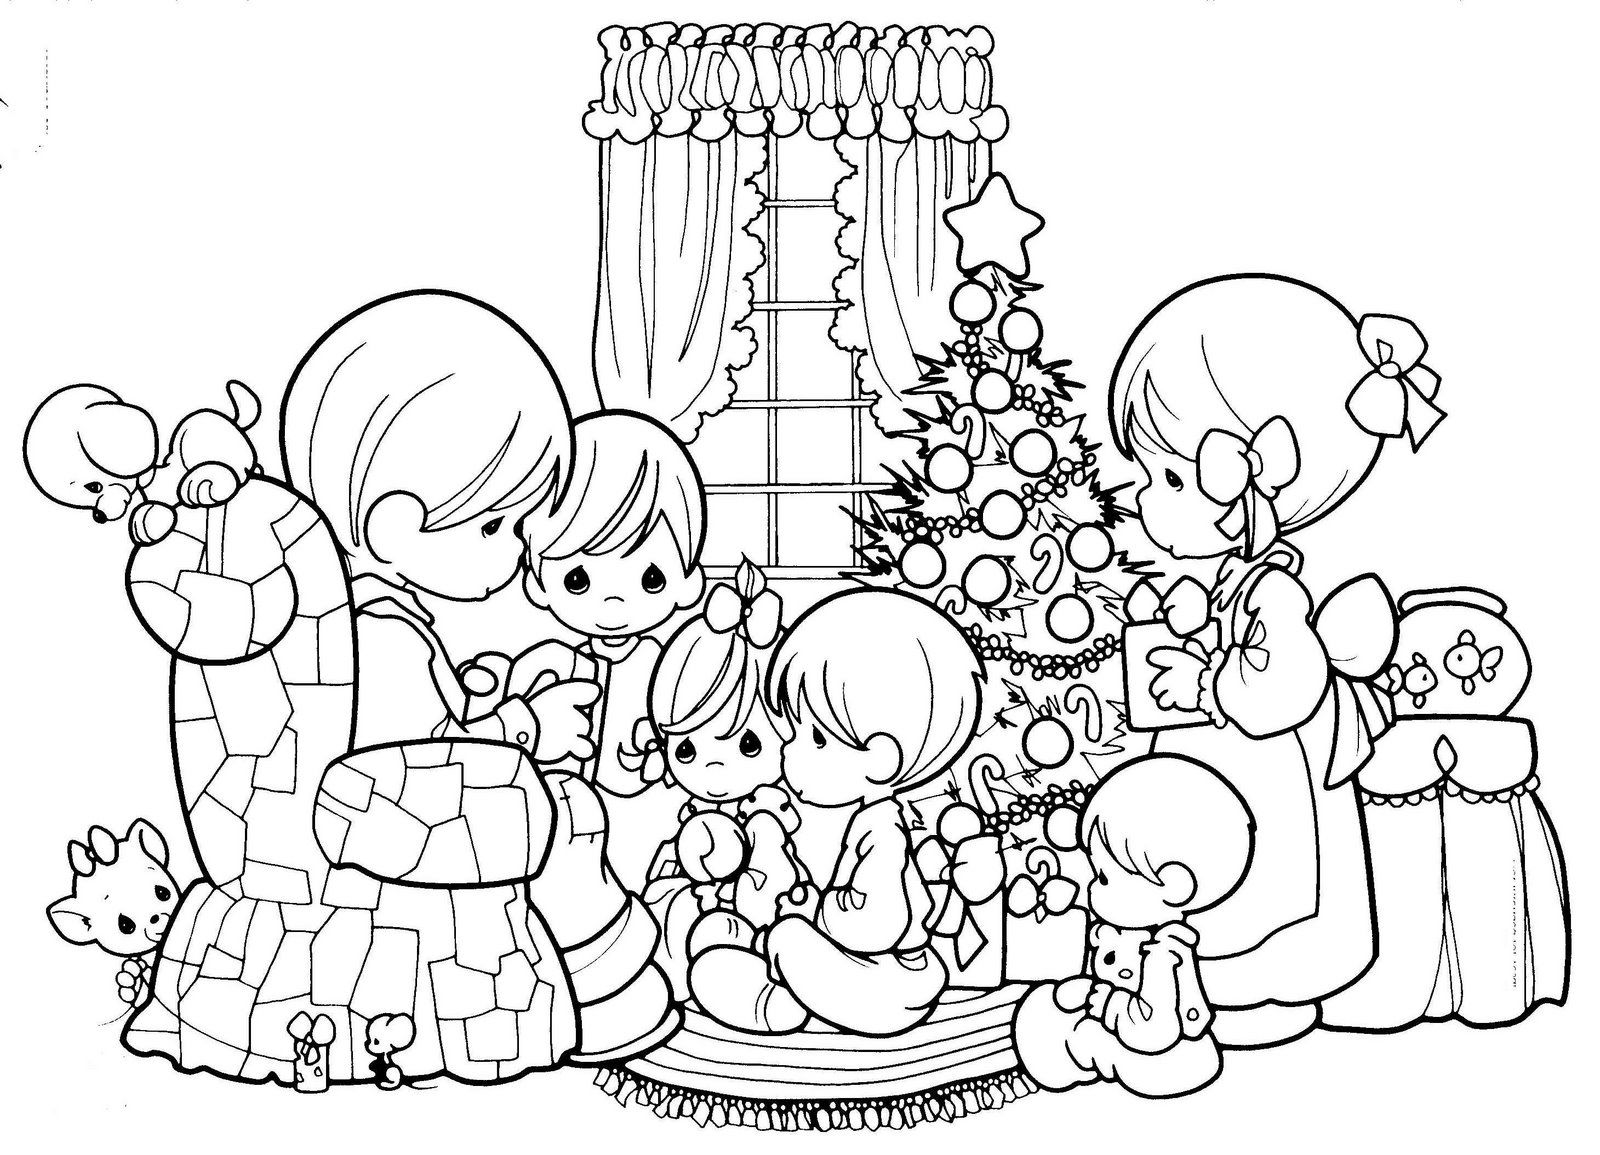 precious moments family christmas scene coloring sheet | Coloring ...